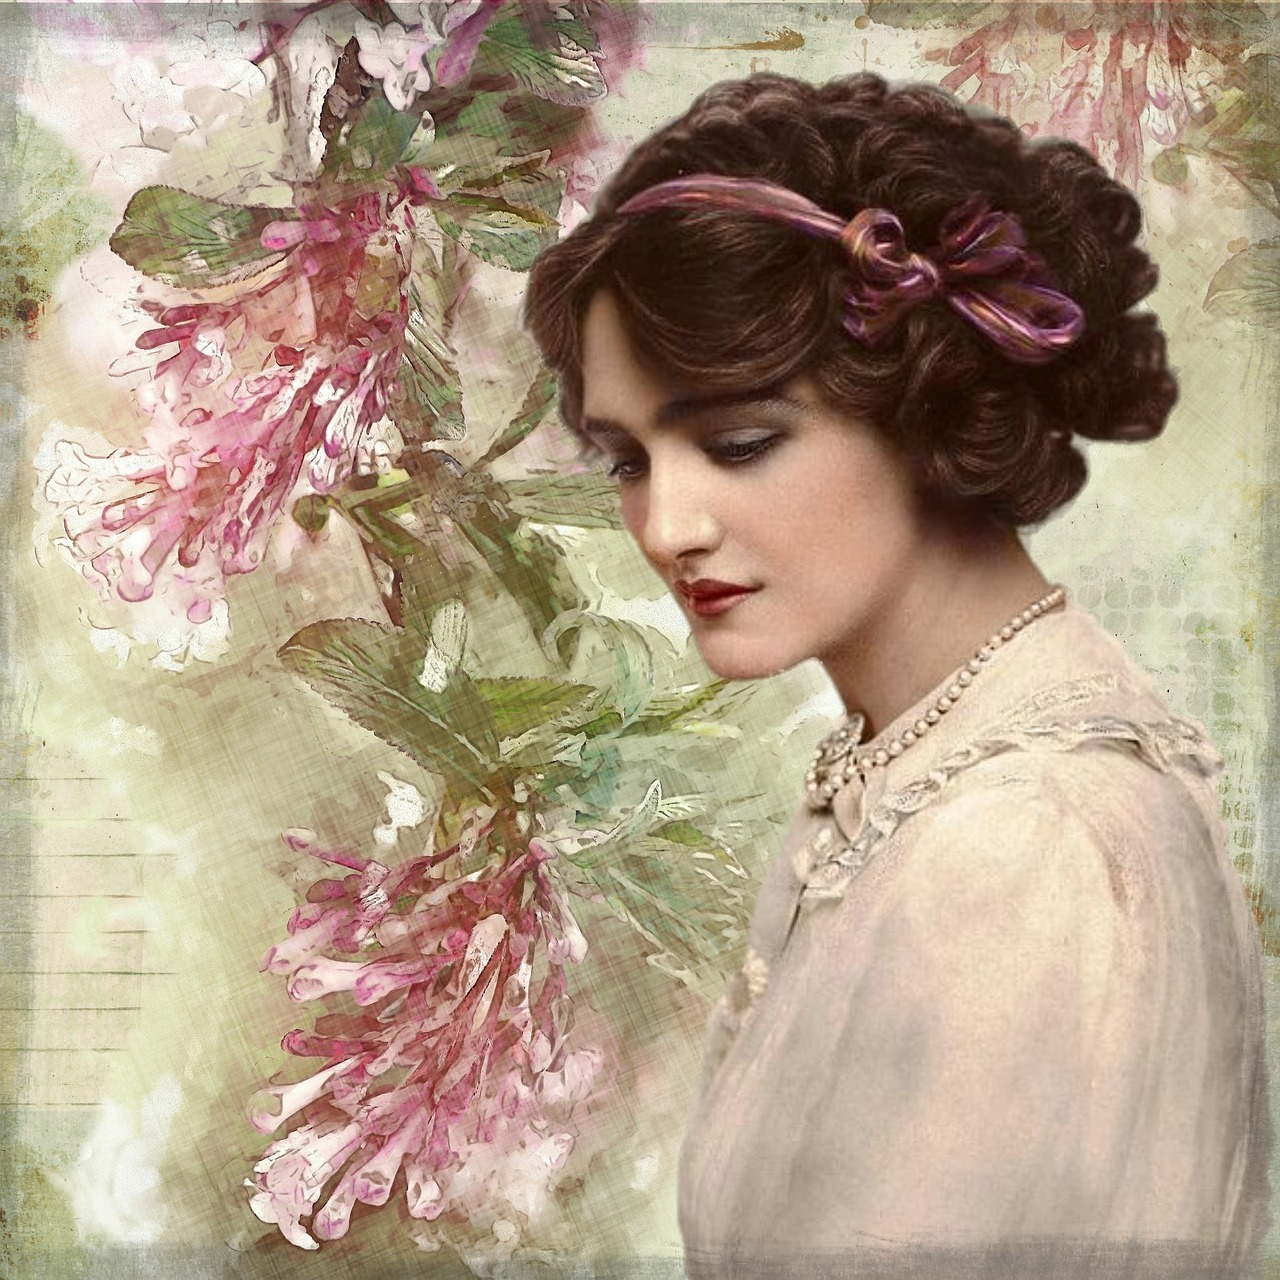 vintage,lady,digital art,floral,beautiful,antique,elsie lily,woman,sexy,female,vintage girl,vintage fashion,1920s,young,attractive,style,hollywood,glamour,fashion lady,model,elegance,hair,portrait,sensuality,elegant,lovely,people,collage,composition,free pictures, free photos, free images, royalty free, free illustrations